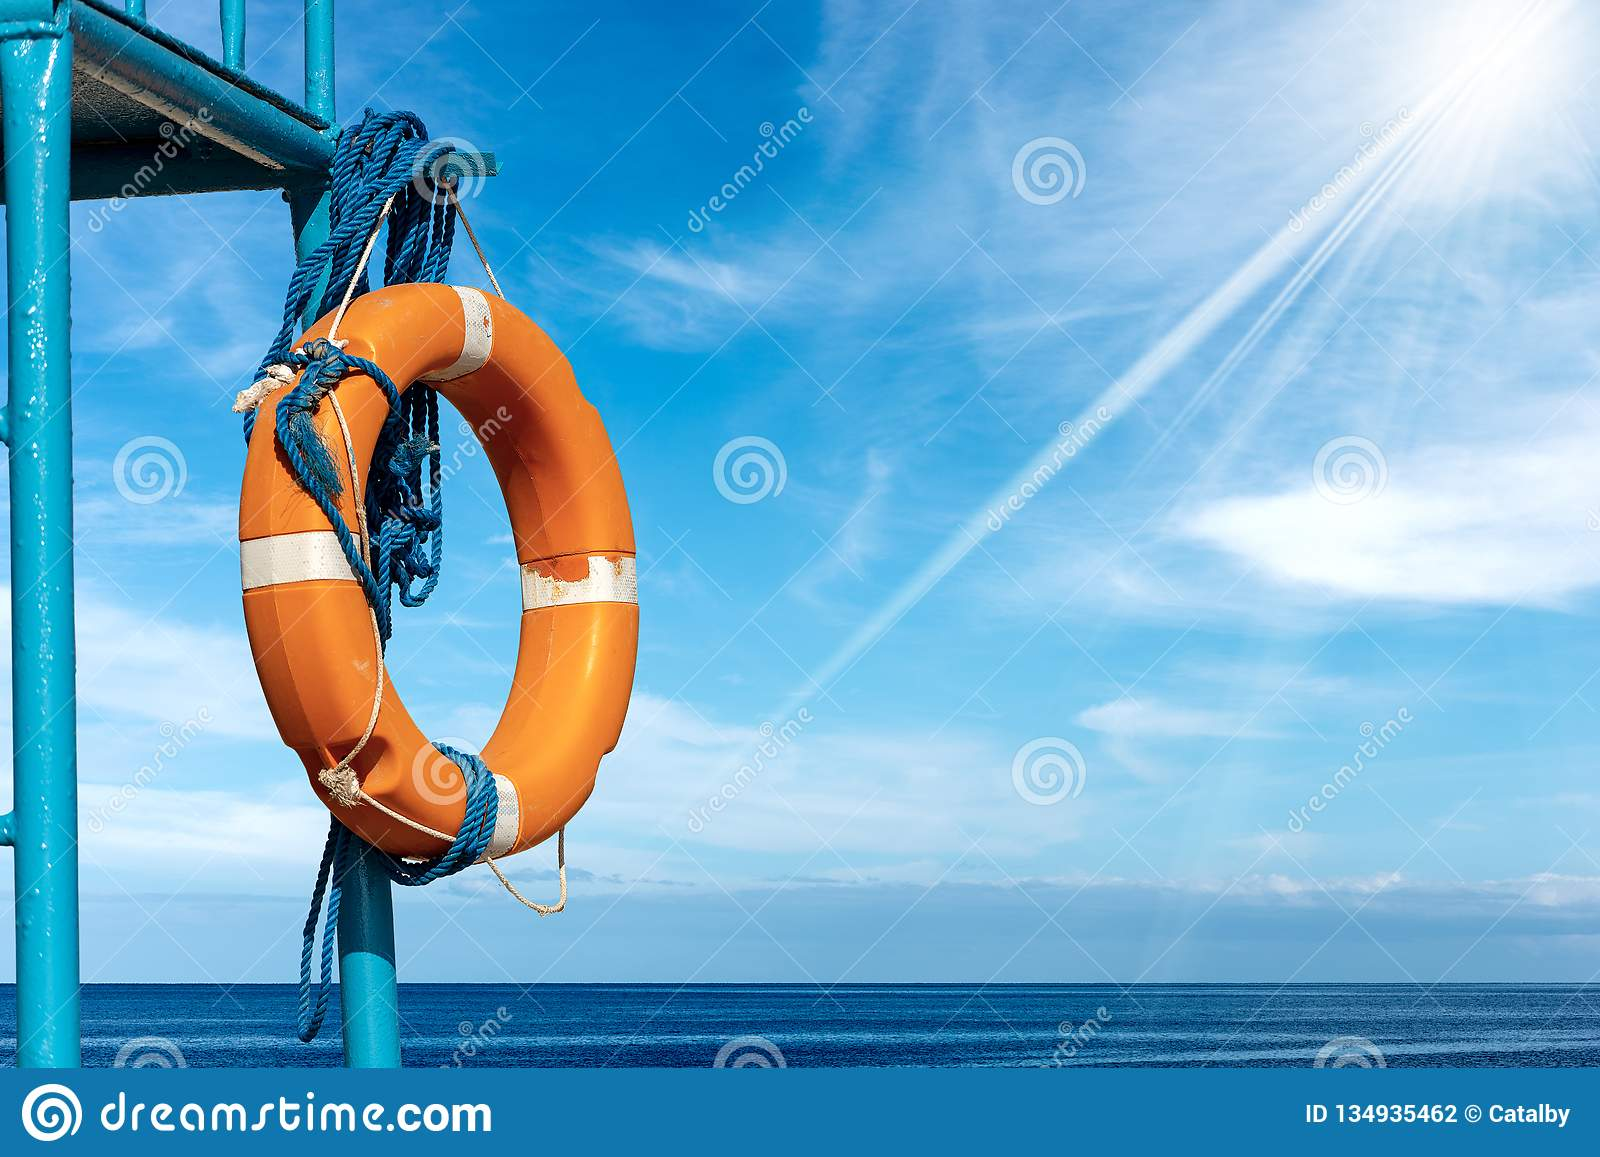 Orange Lifebuoy with Ropes on Lifeguard Chair